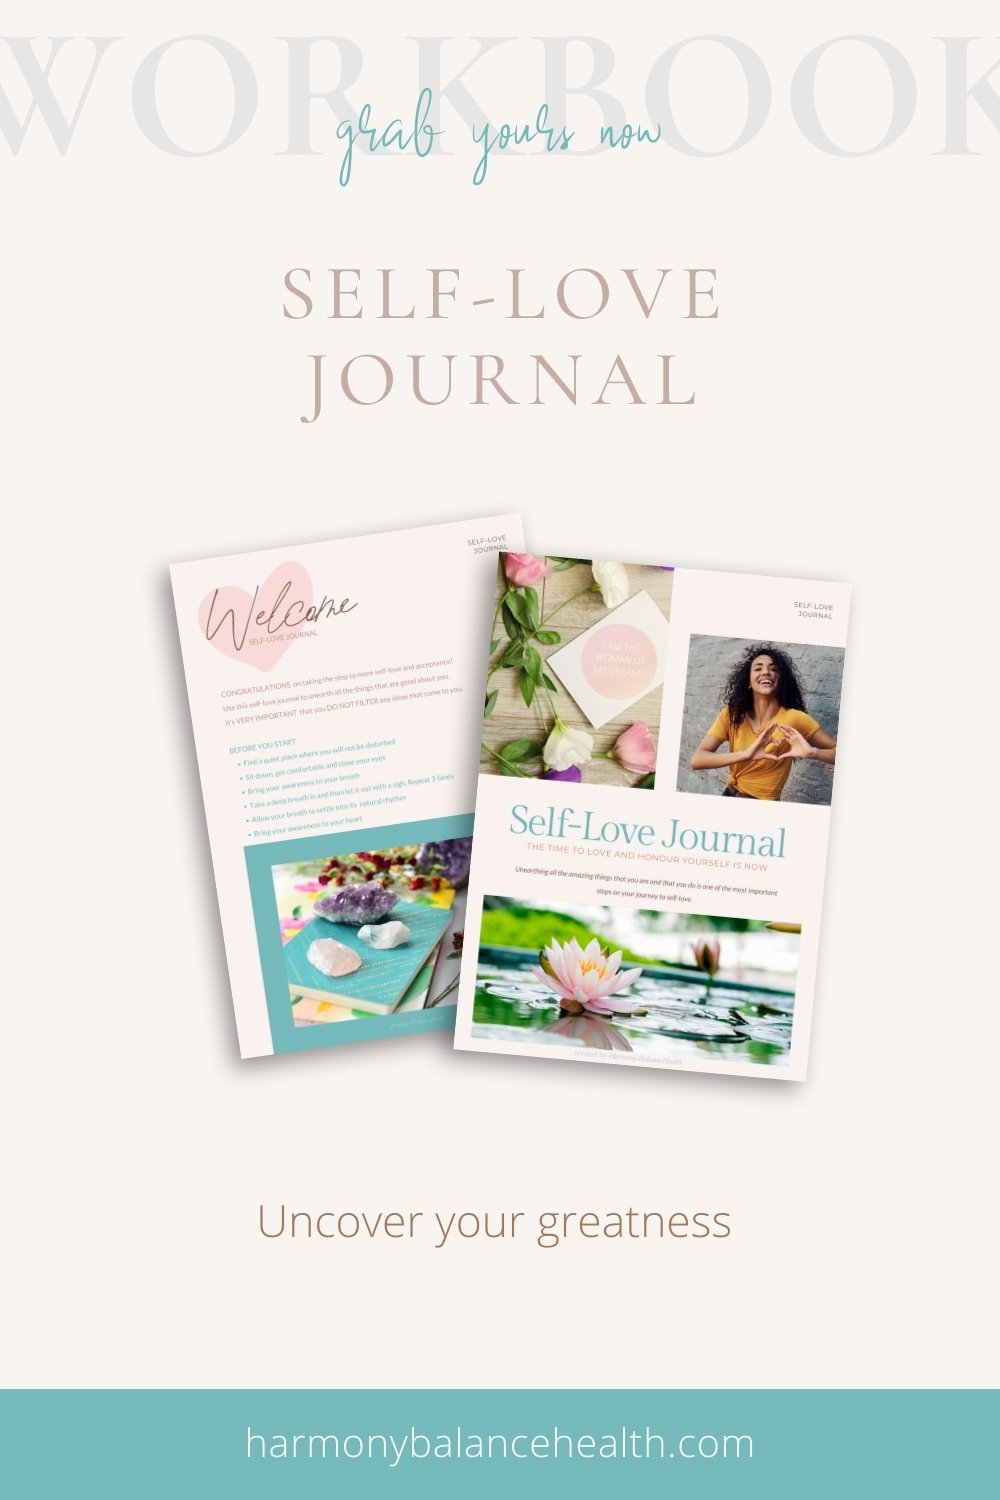 Self-Love Journal Freebie